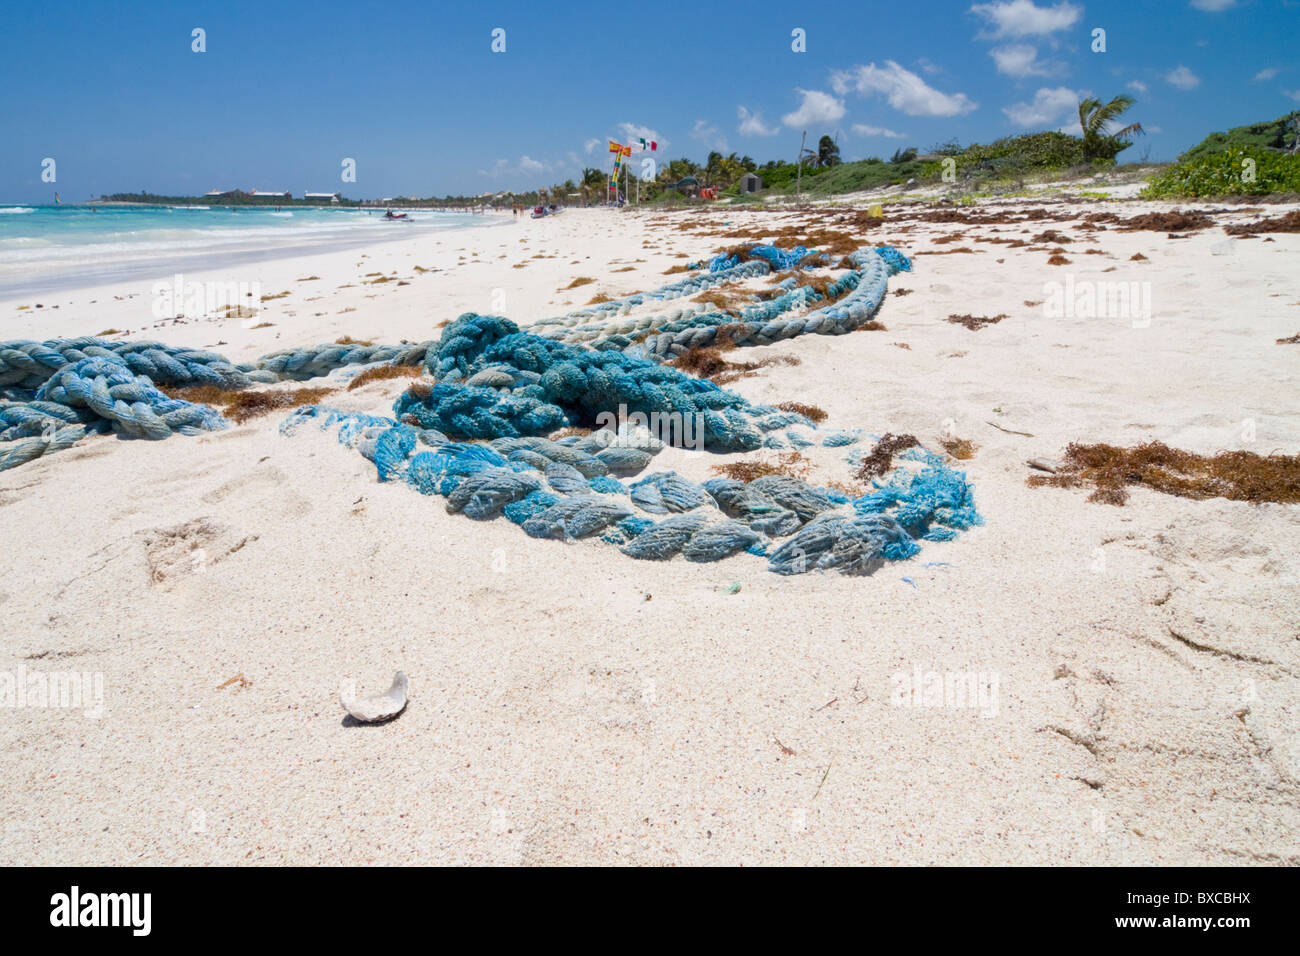 Discarded ship rope washed up on a sunny resort beach in mexico. - Stock Image